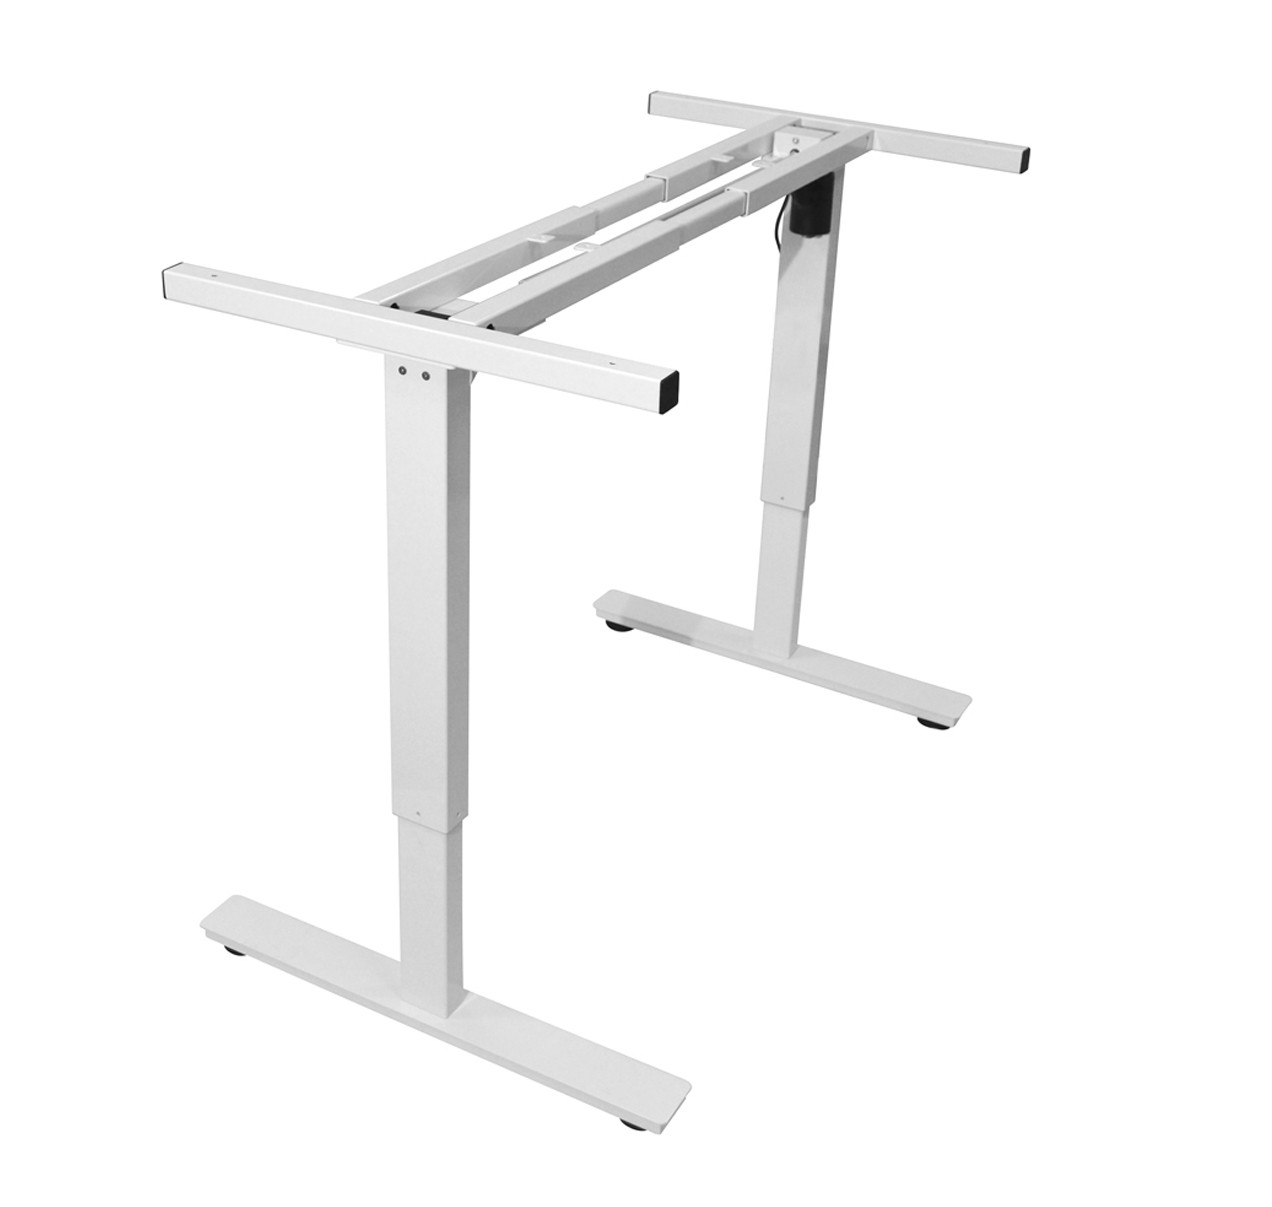 Height Adjustable Electric Frame (WxDxH) 1150-1600x620x680-1130mm (Frame Only)